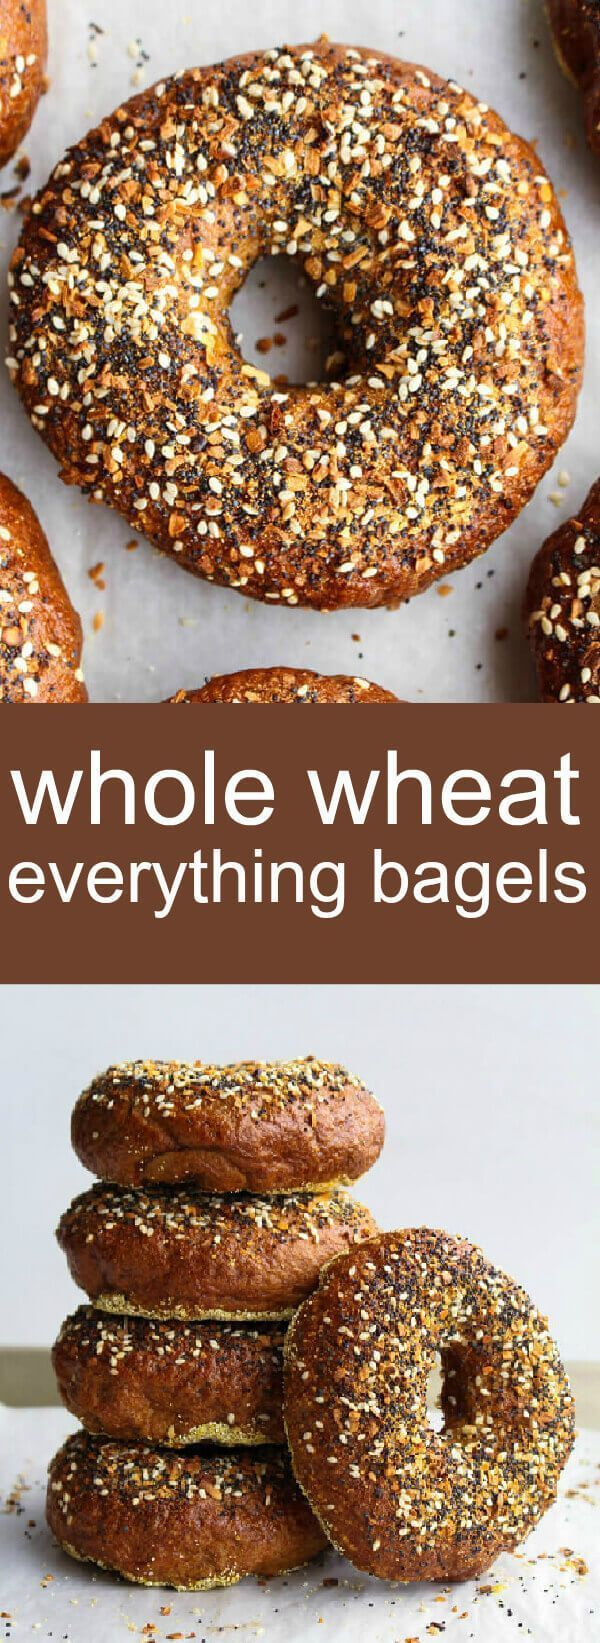 Whole Wheat Everything Bagels homemade/ bagels/ breakfast/ Savory and delicious these Whole Wheat Everything Bagels are a fun, flavorful and simple breakfast recipe that everyone will enjoy! everything bread / how to make bagels / whole wheat bagels